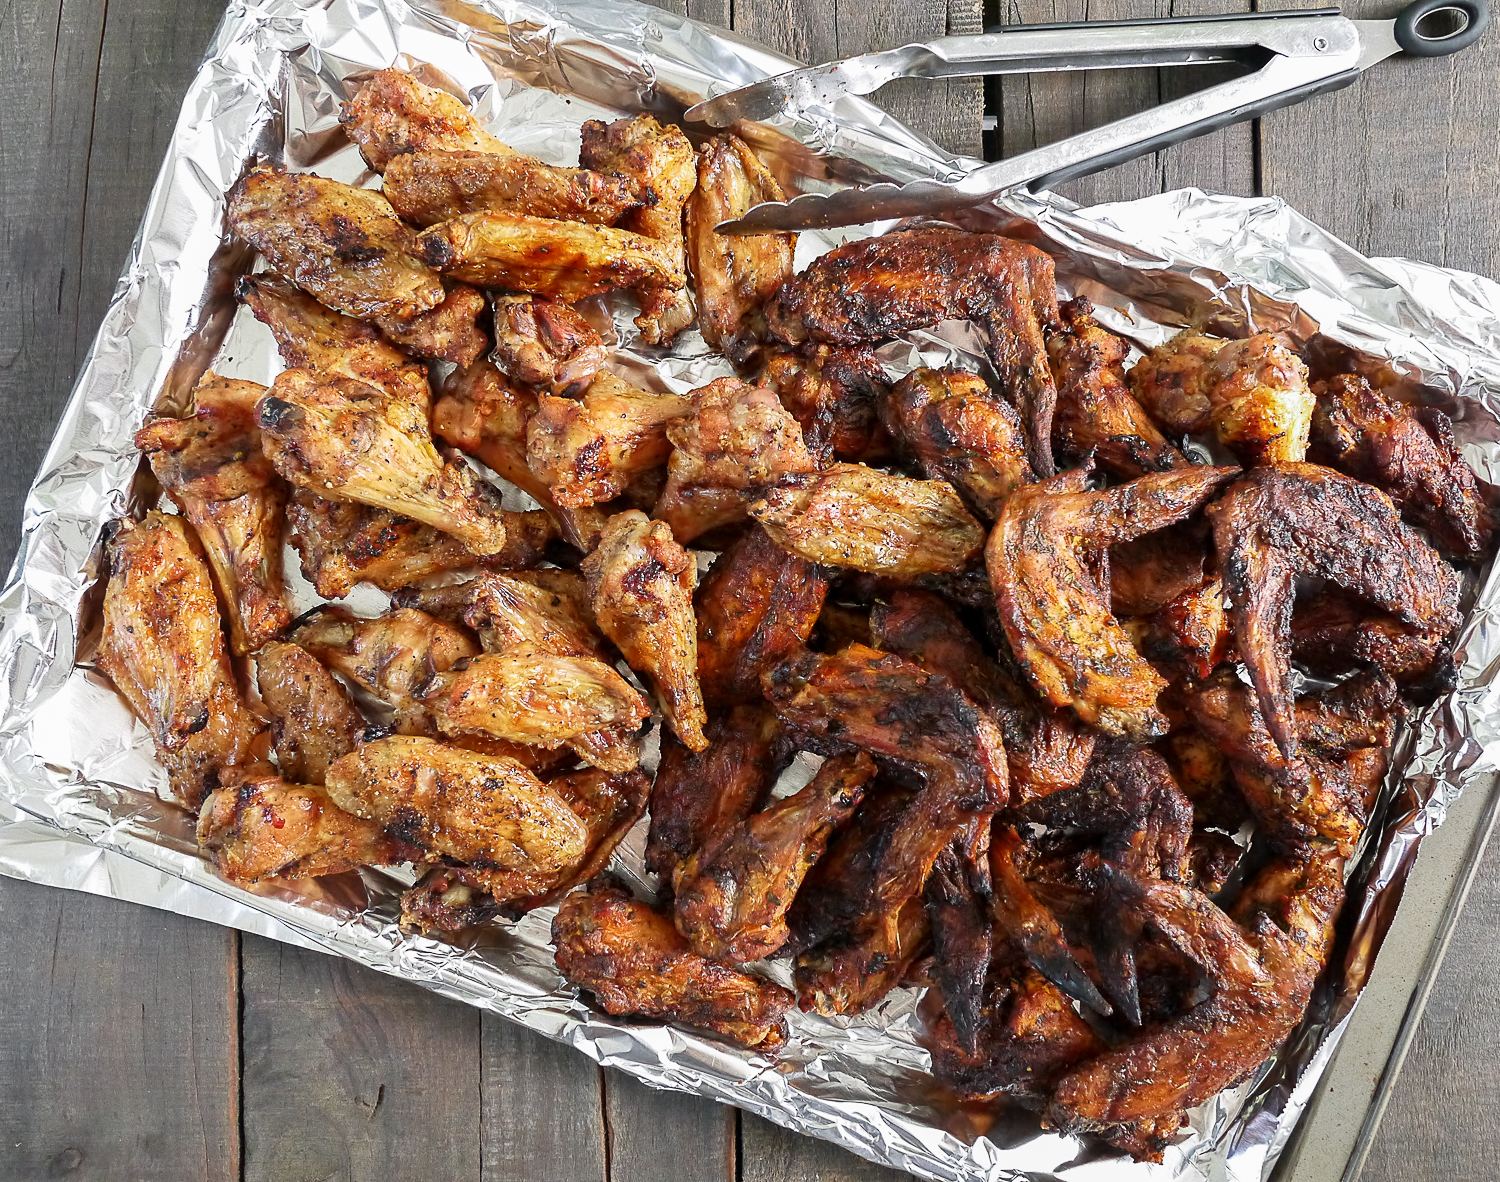 In case you notice the different color, the darker wings are the Spicy ...